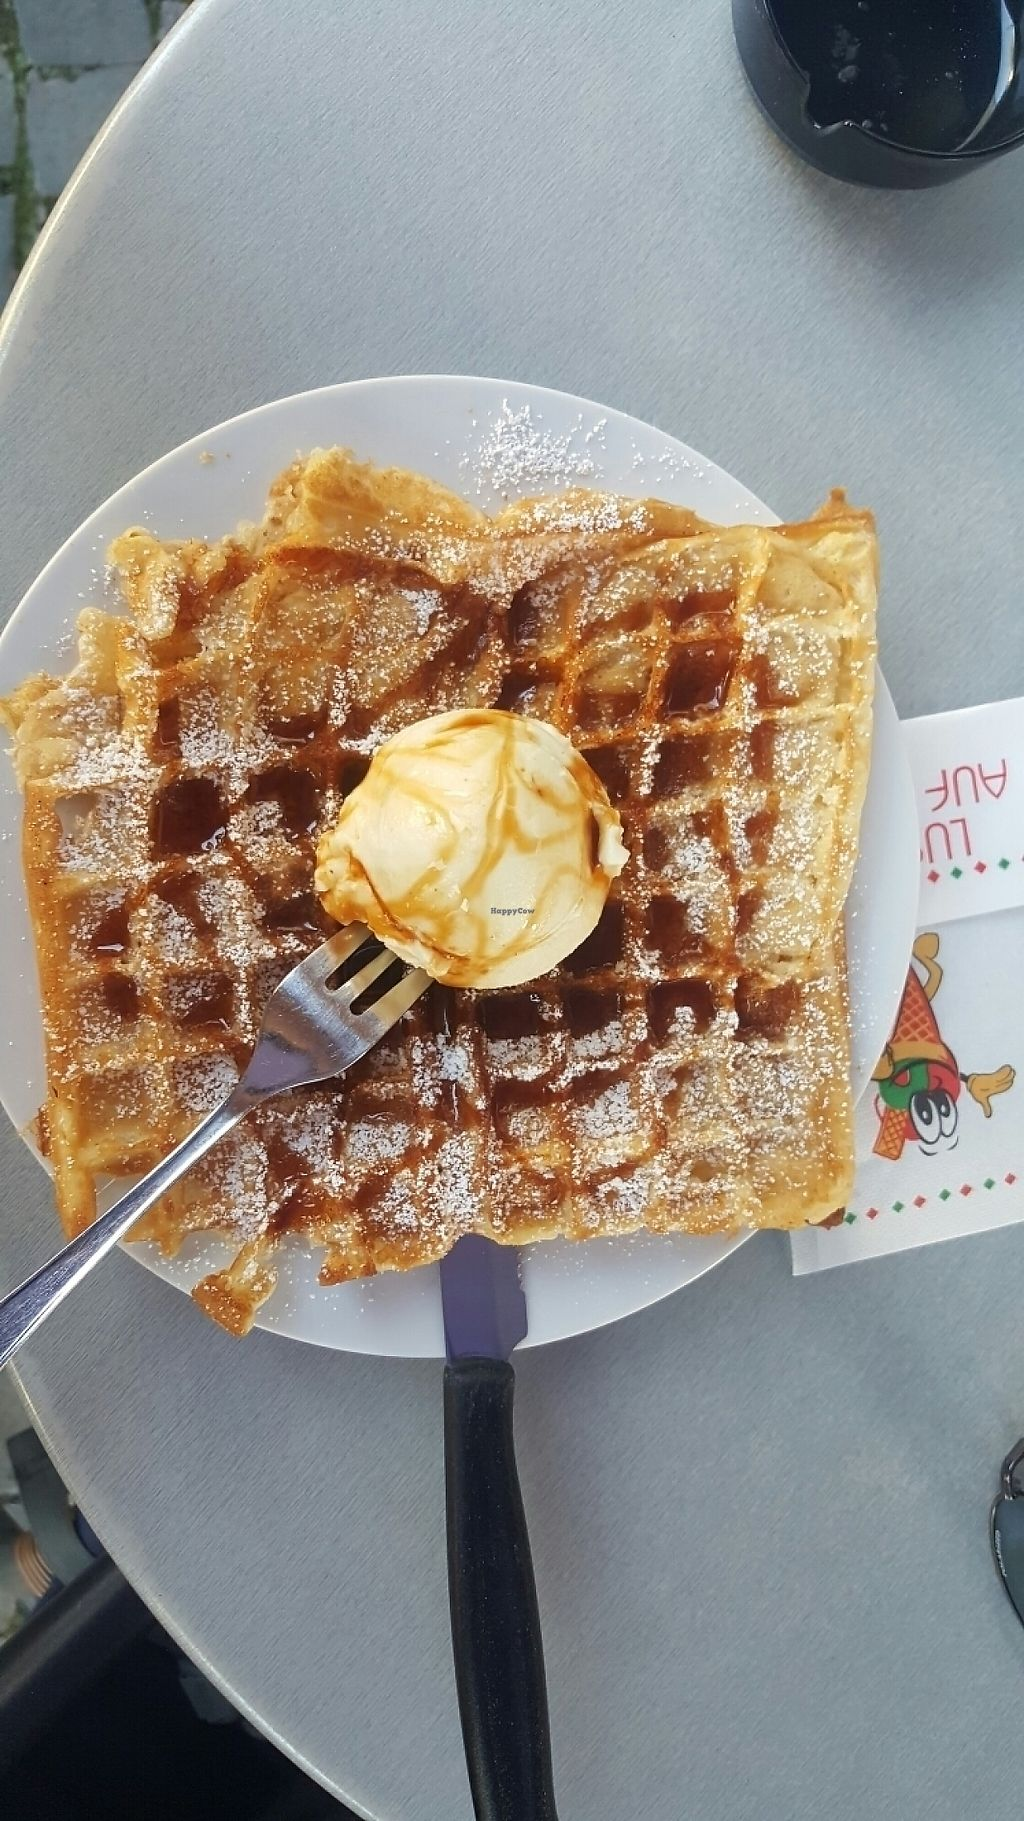 """Photo of Brustolon Cafe Gelateria  by <a href=""""/members/profile/Derina"""">Derina</a> <br/>Waffle with ice cream and caramel sauce <br/> May 16, 2017  - <a href='/contact/abuse/image/79029/259337'>Report</a>"""